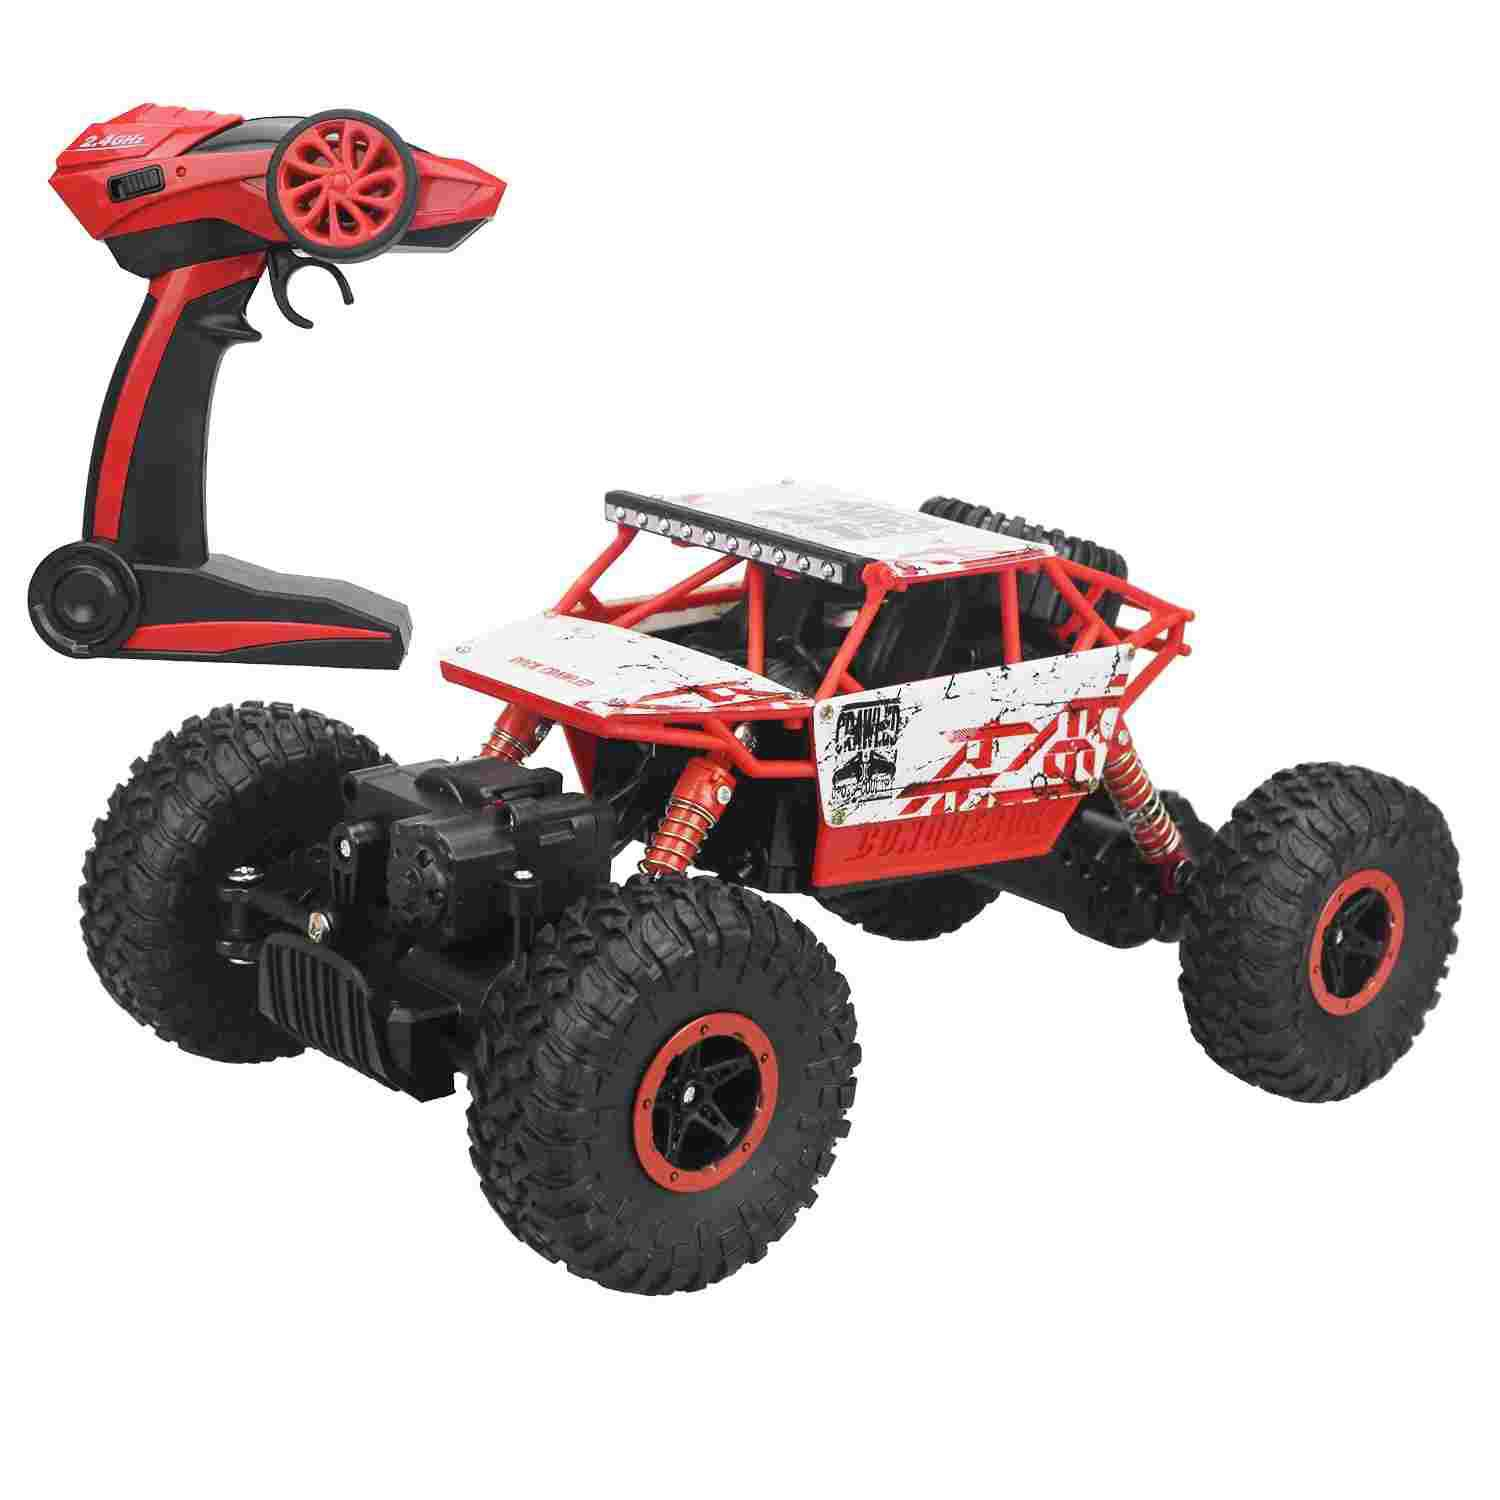 MousePotato 1 18 4WD Rally Car Rock Crawler f Road Race Monster